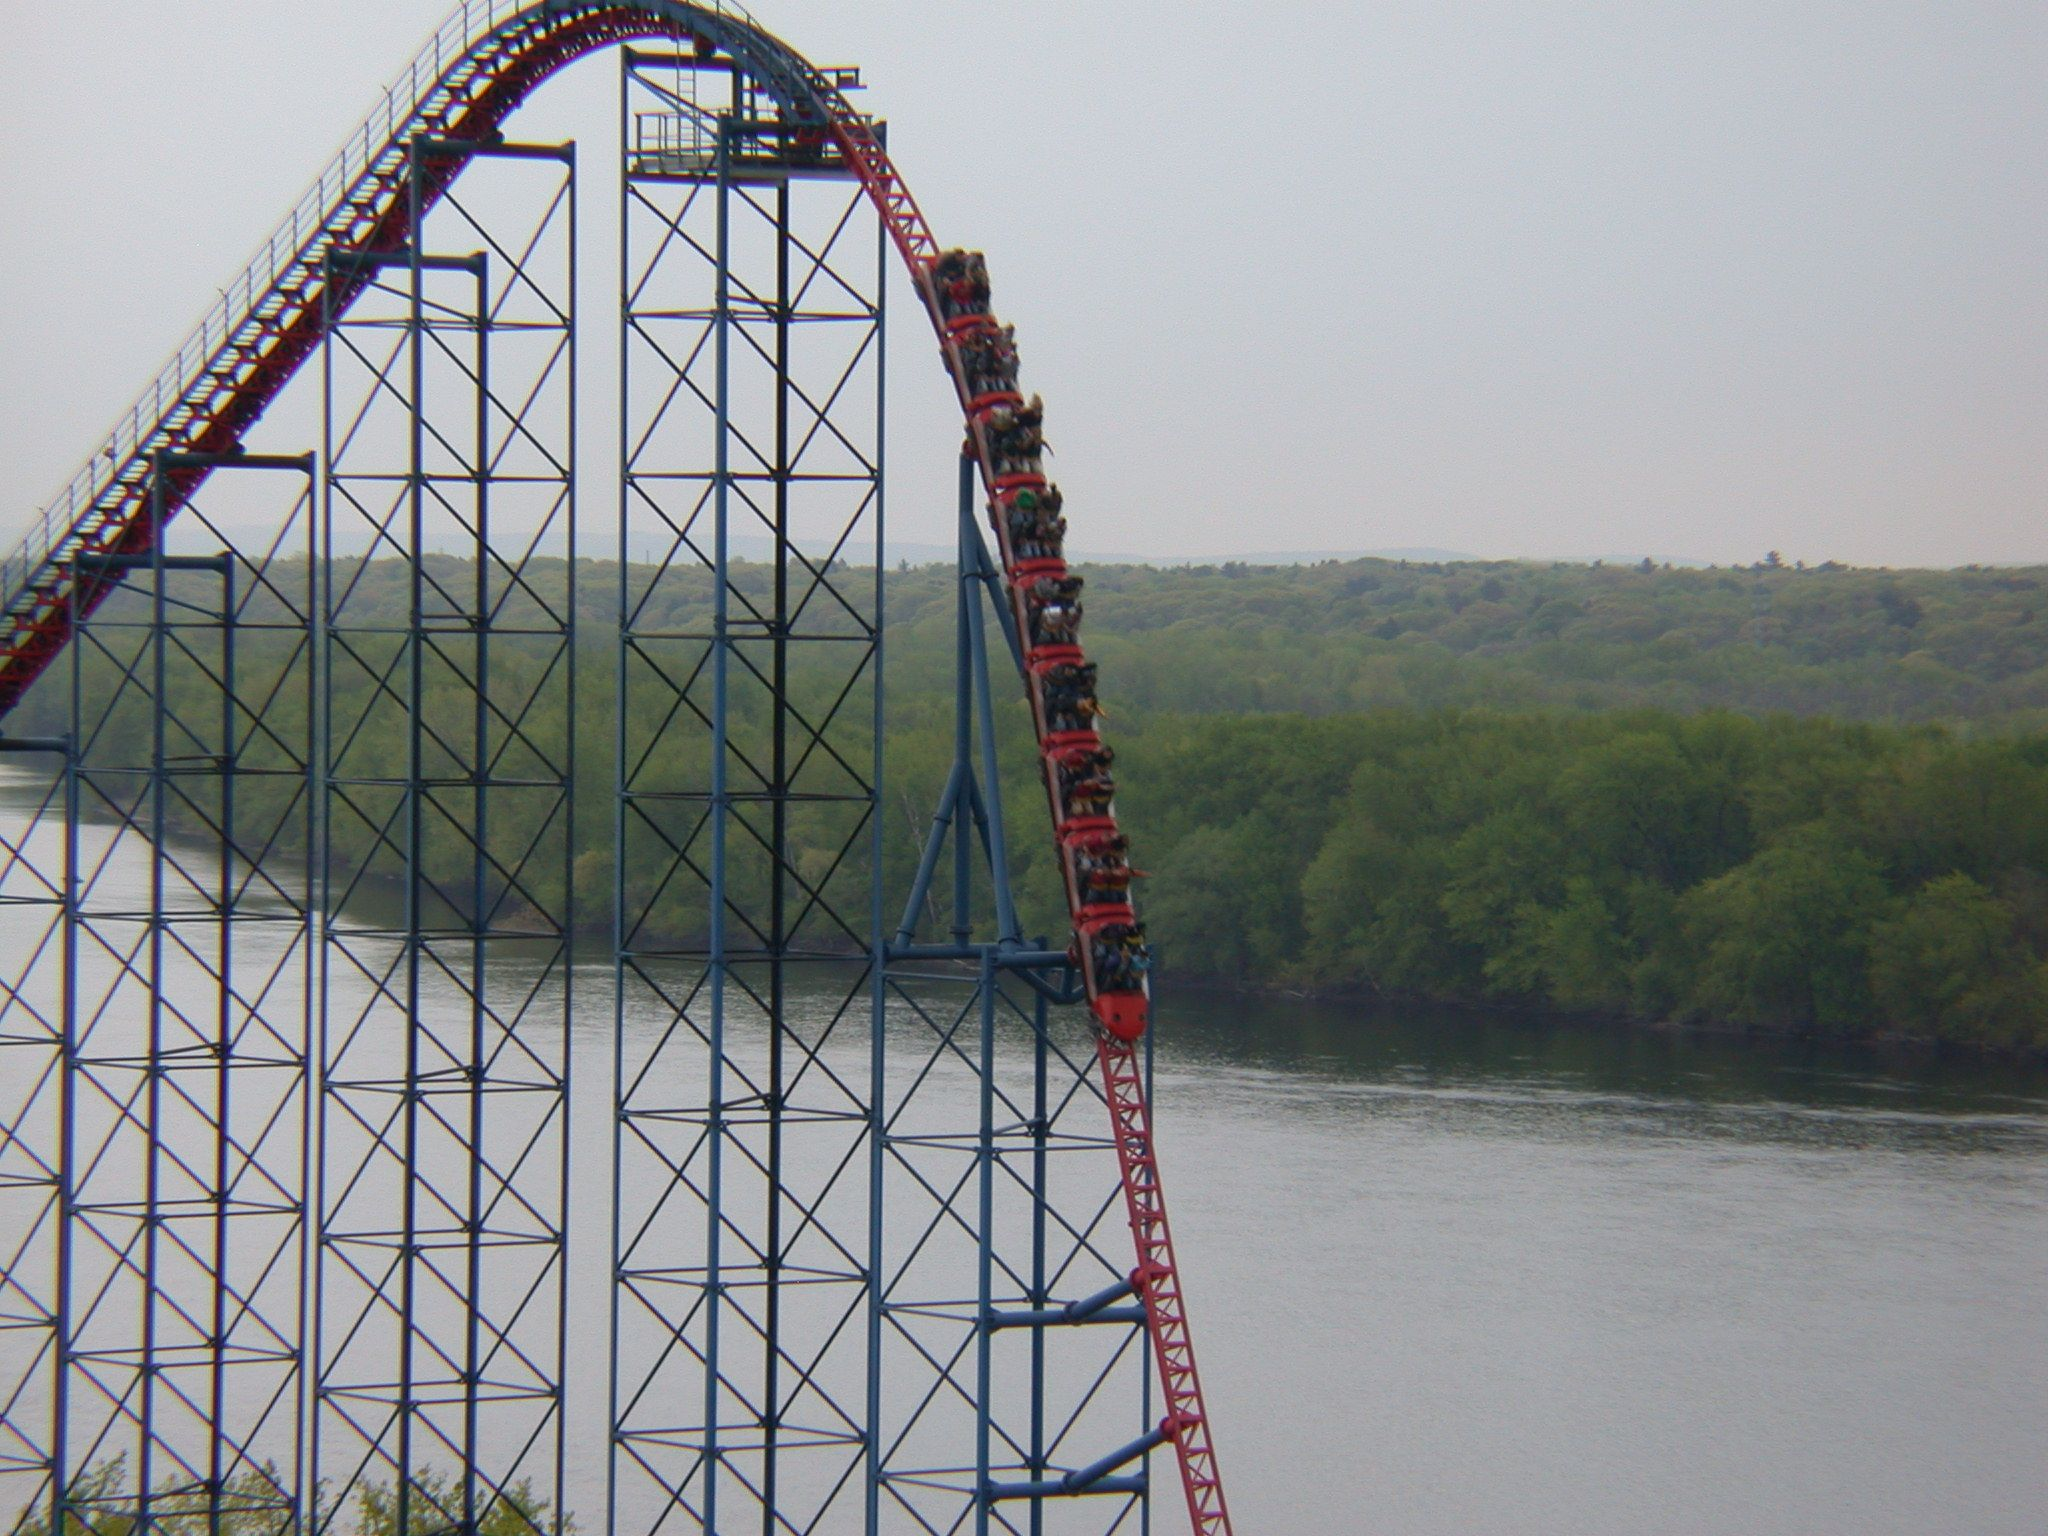 Superman Ride Of Steel Roller Coaster At Six Flags New England